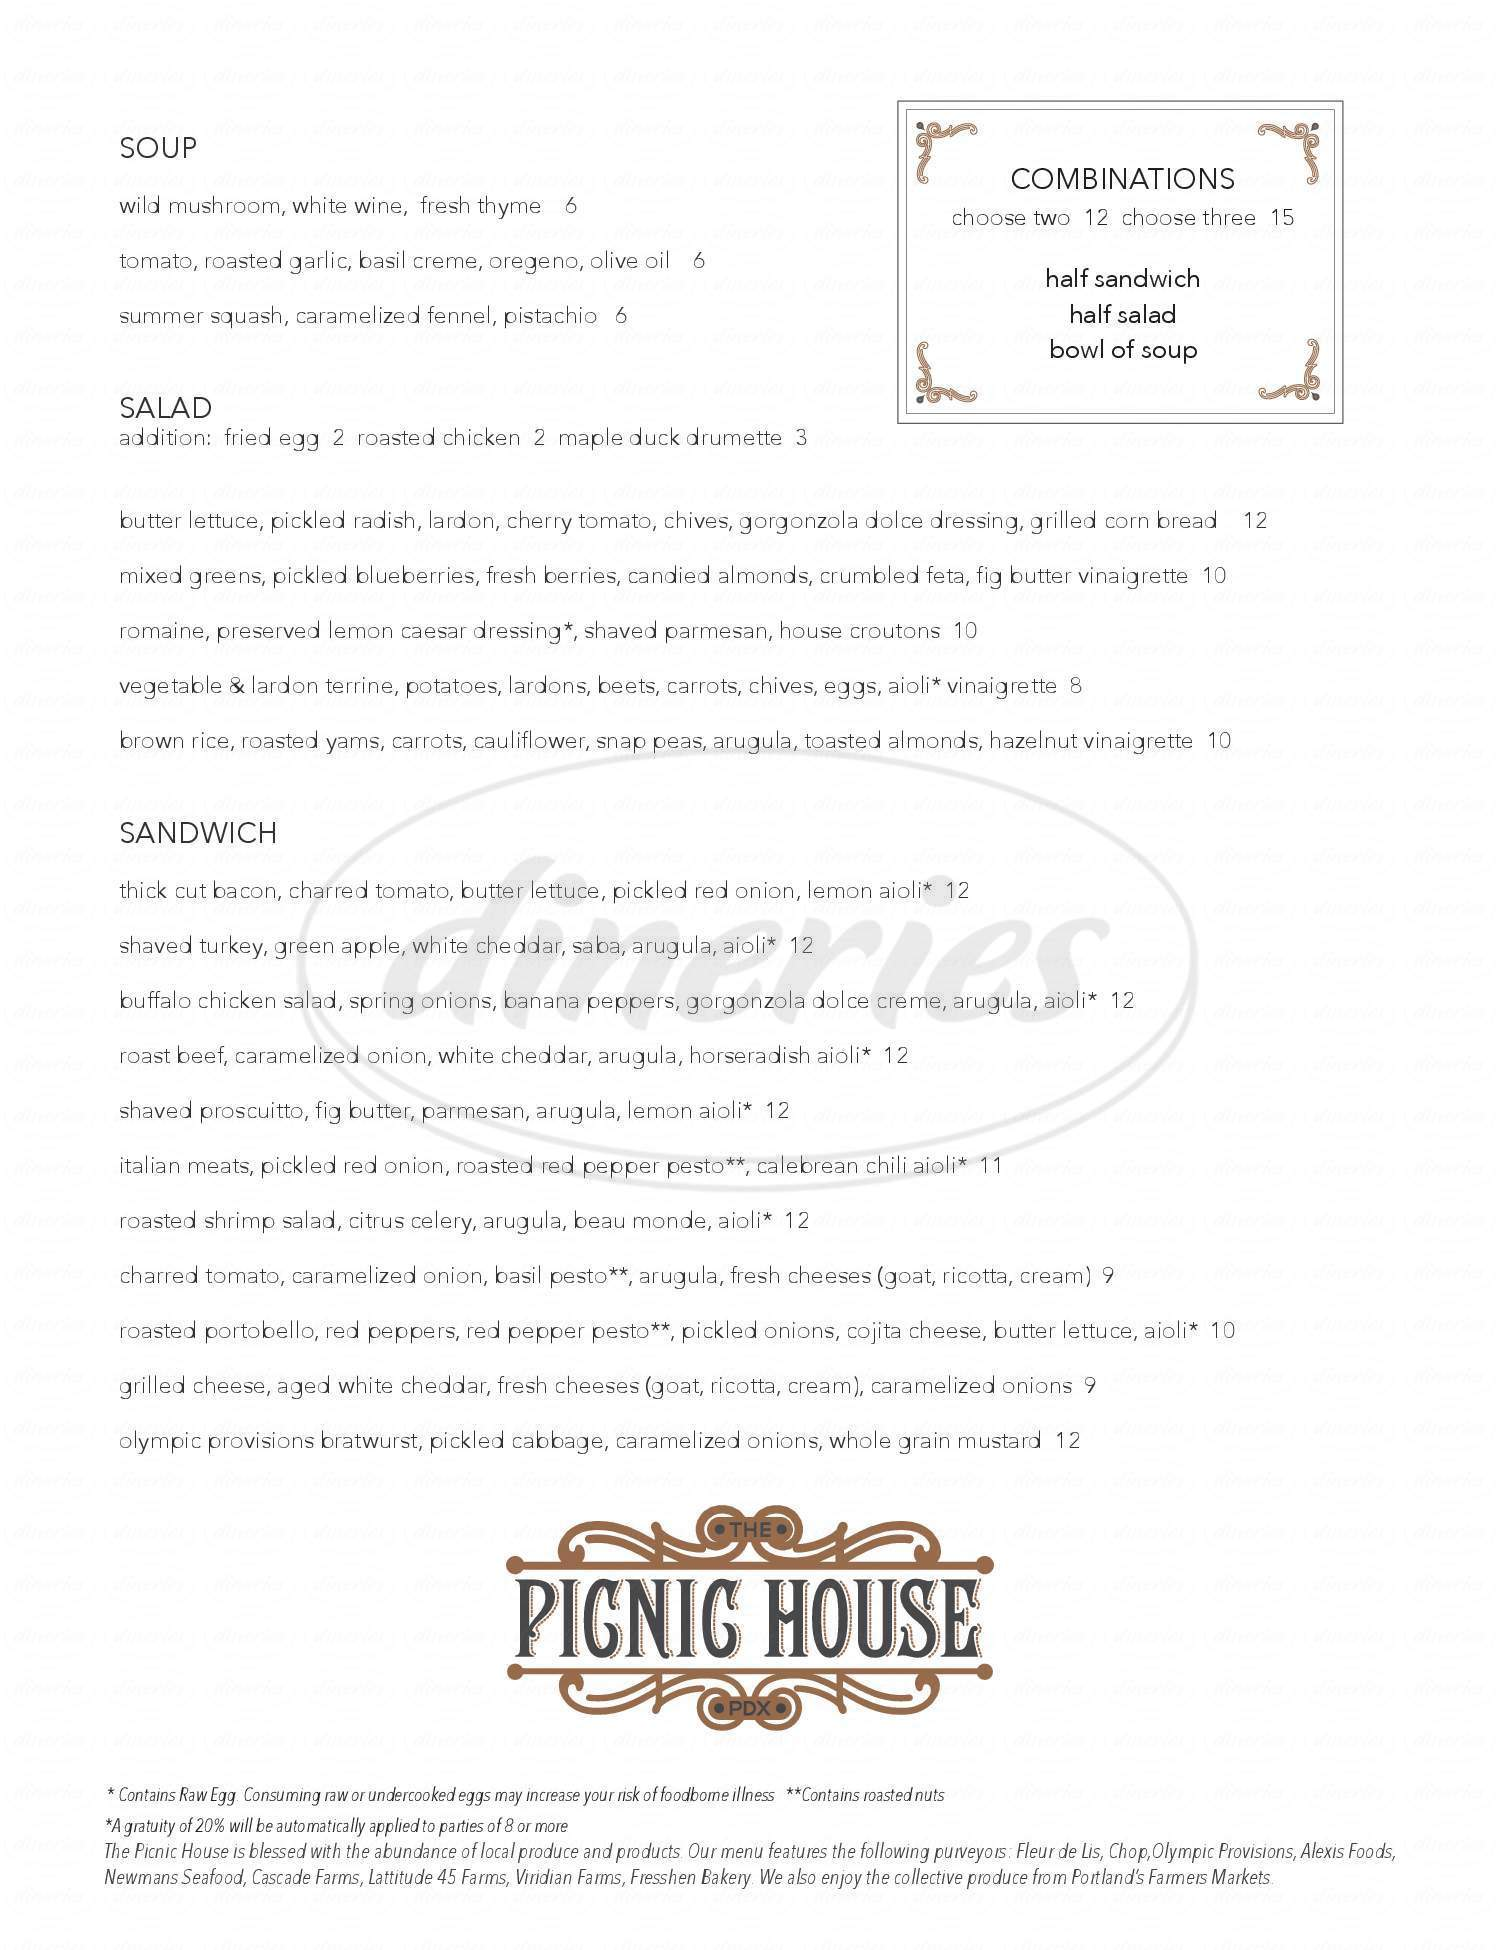 menu for The Picnic House